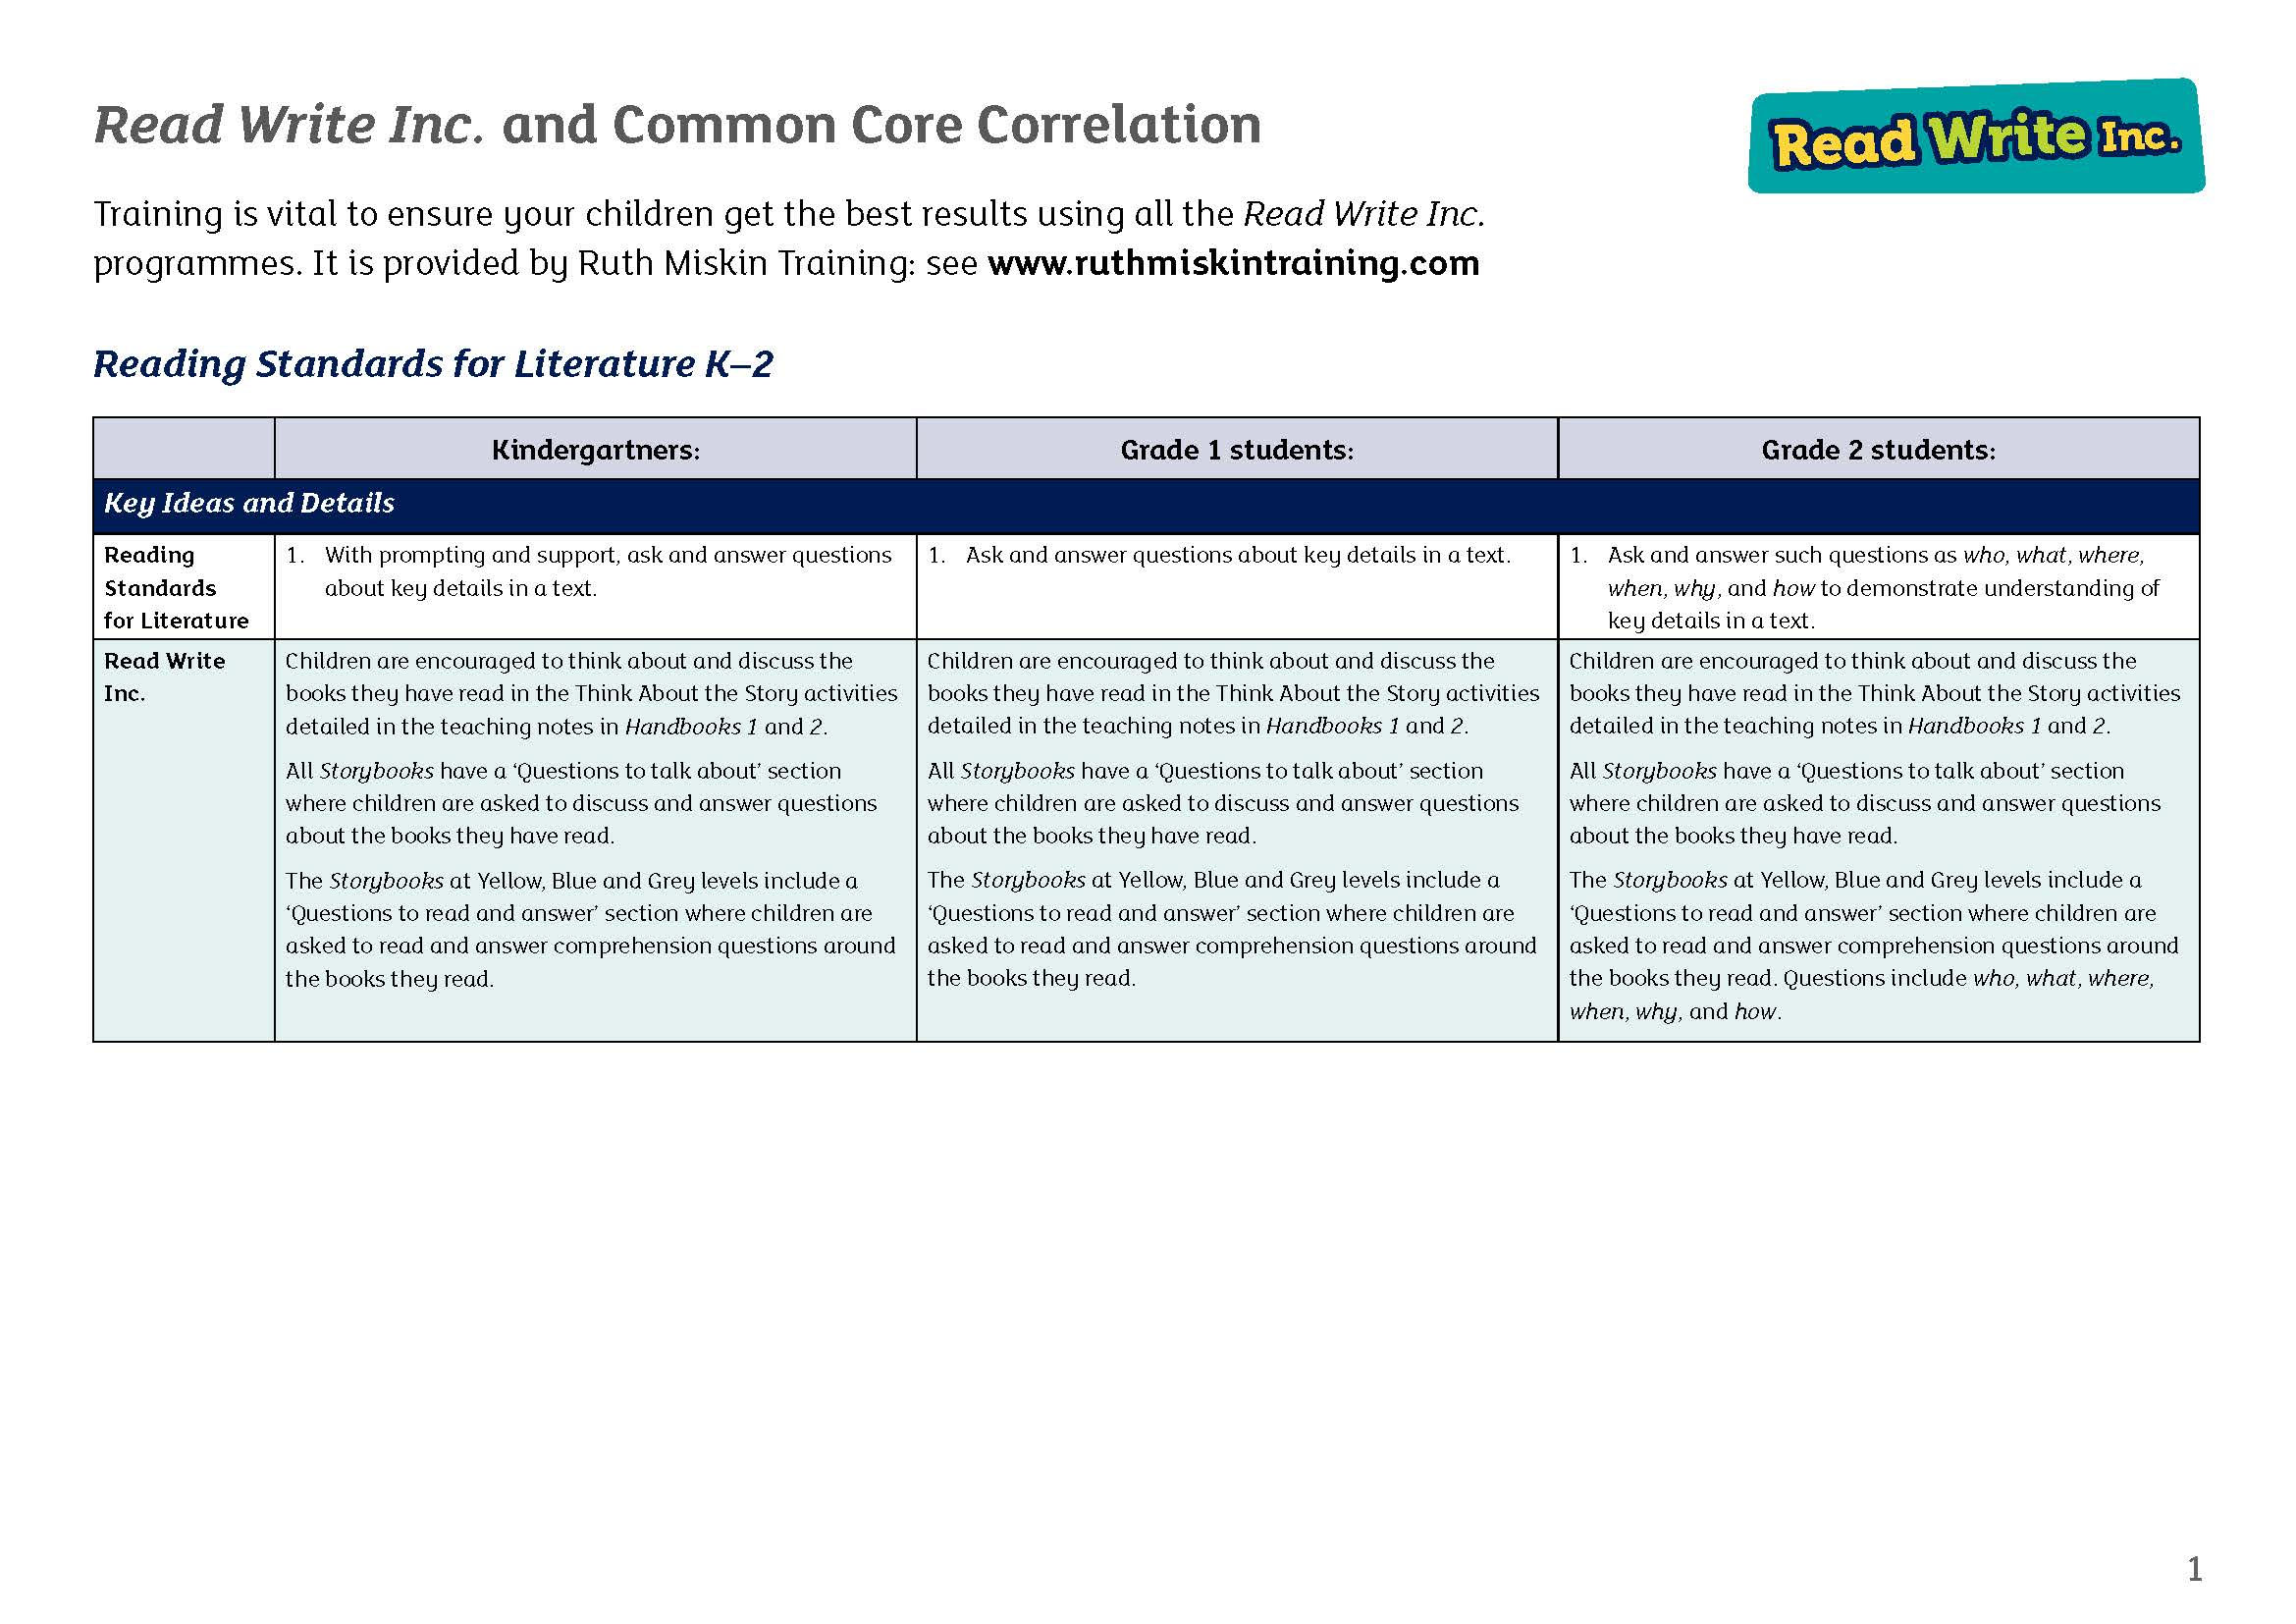 Read Write Inc. Common Core Correlation (PDF)